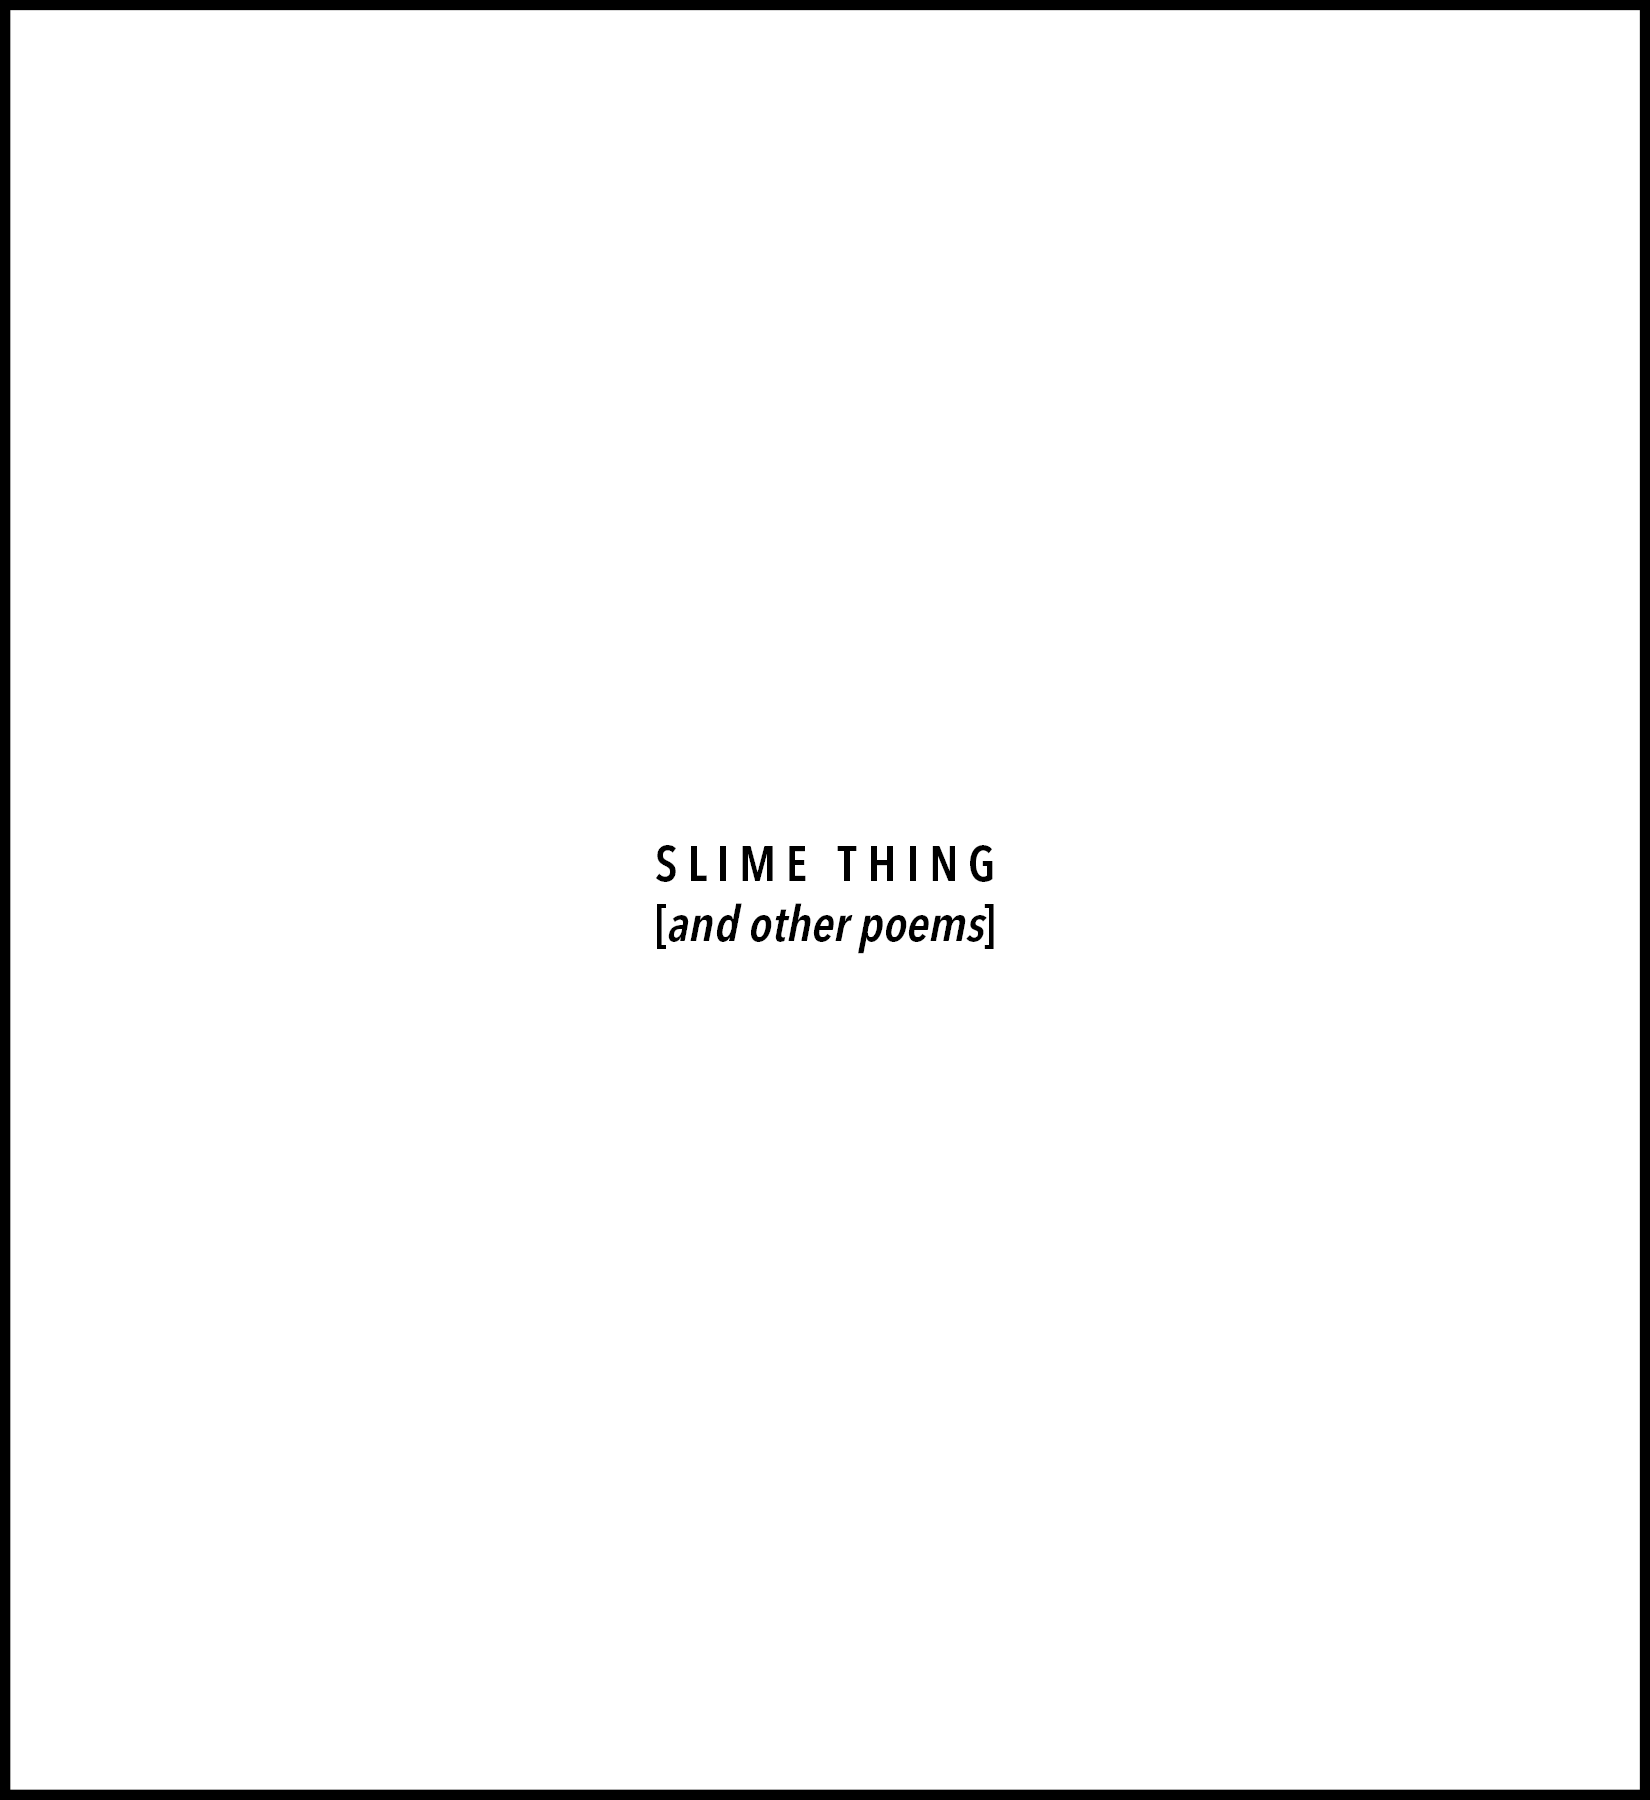 SLIME THING COVER